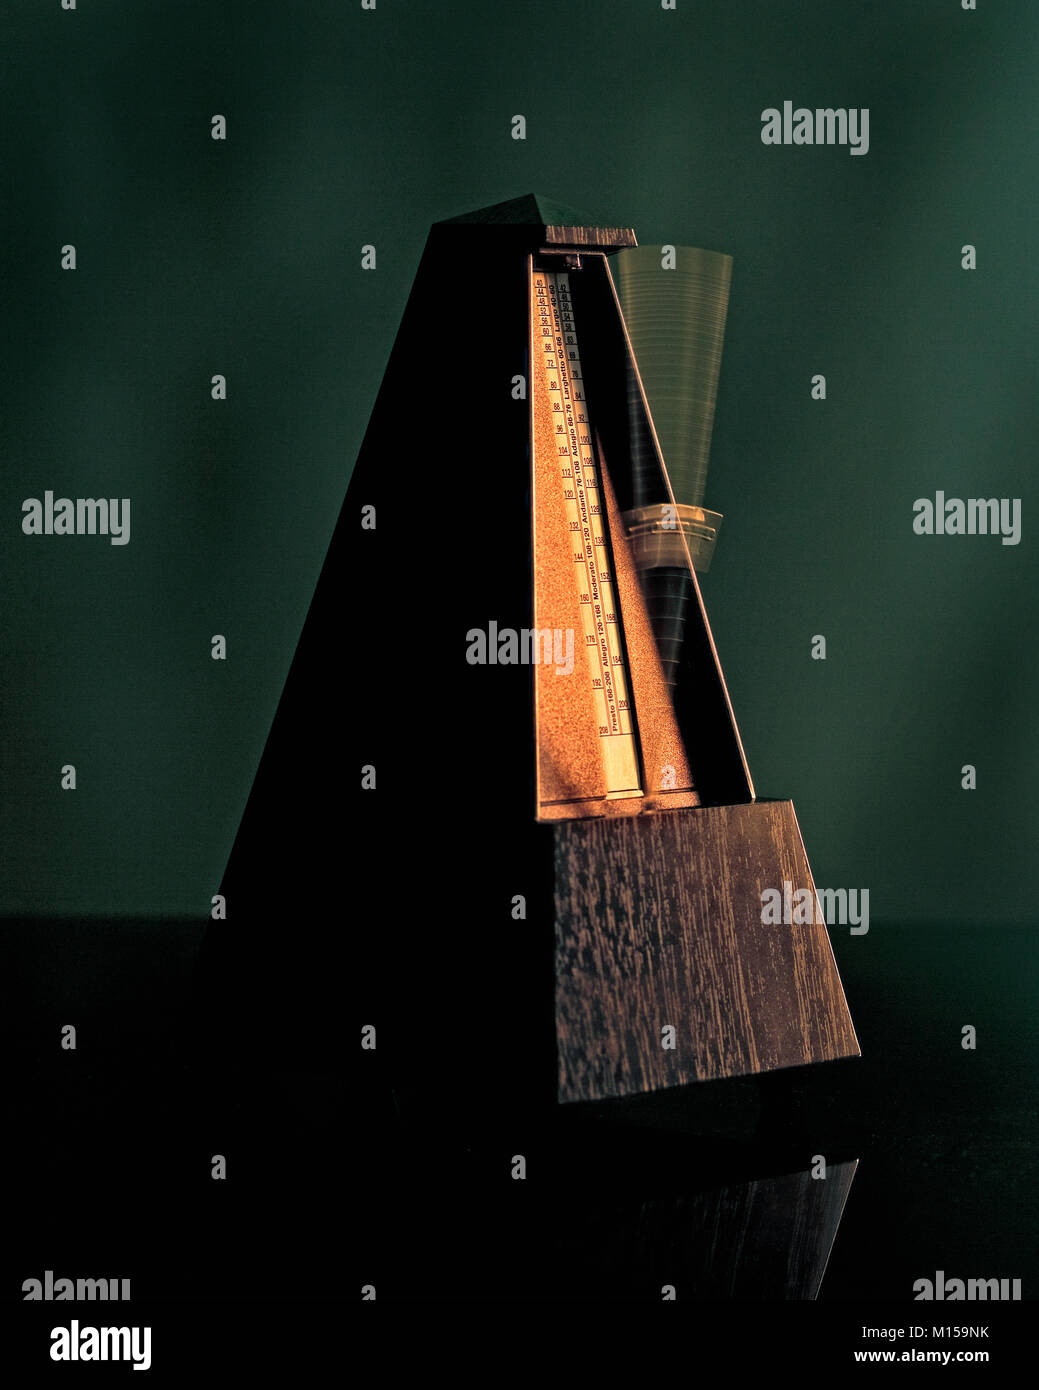 Metronome - The Instrument of Keeping Correct Beat Playing Music - Stock Image